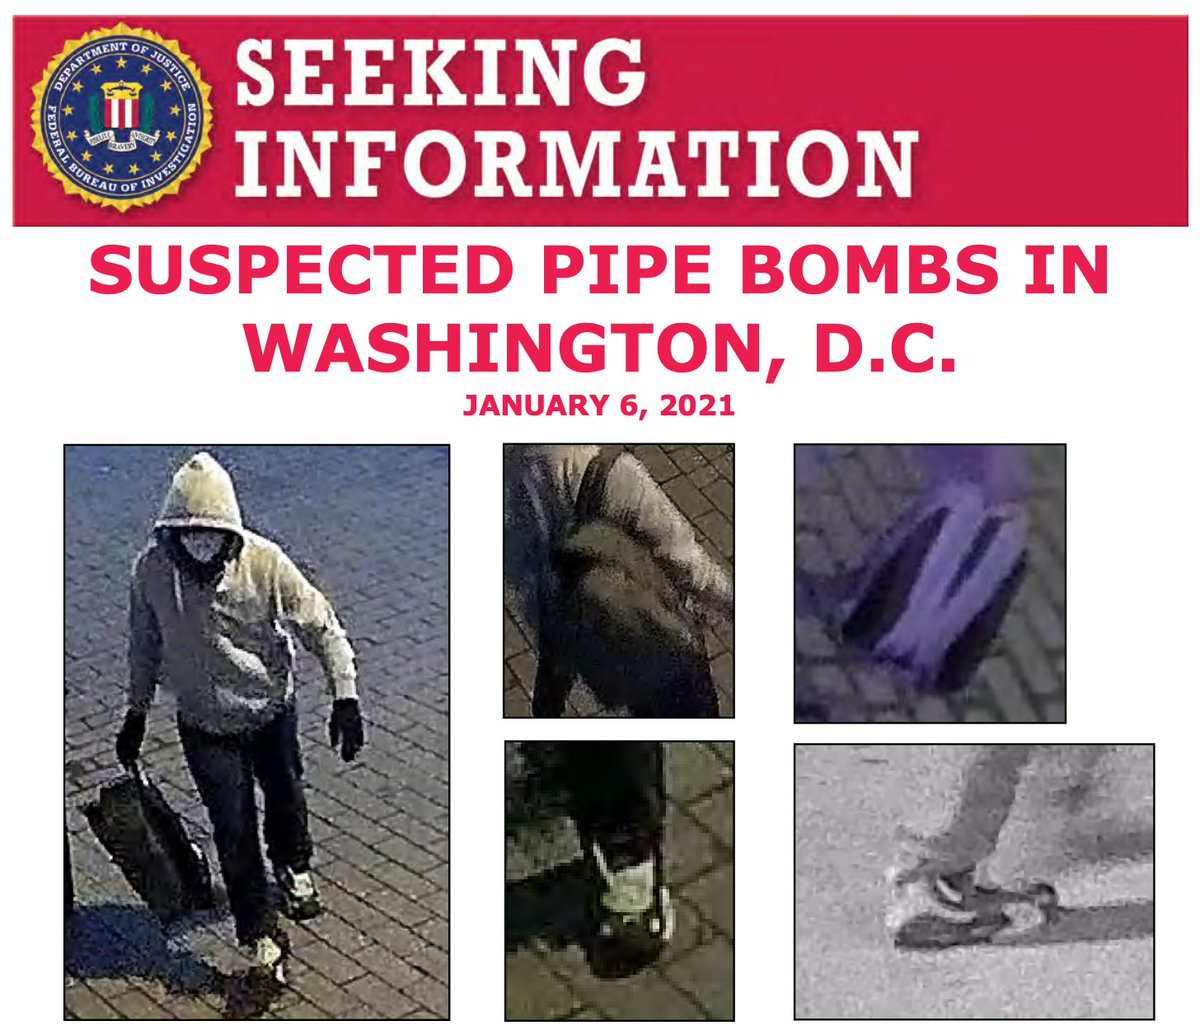 The #FBI and @ATFHQ are offering up to $75,000 for information leading to the location, arrest, and conviction of the individual(s) responsible for placing suspected pipe bombs in Washington, D.C., on January 6. Submit tips at .